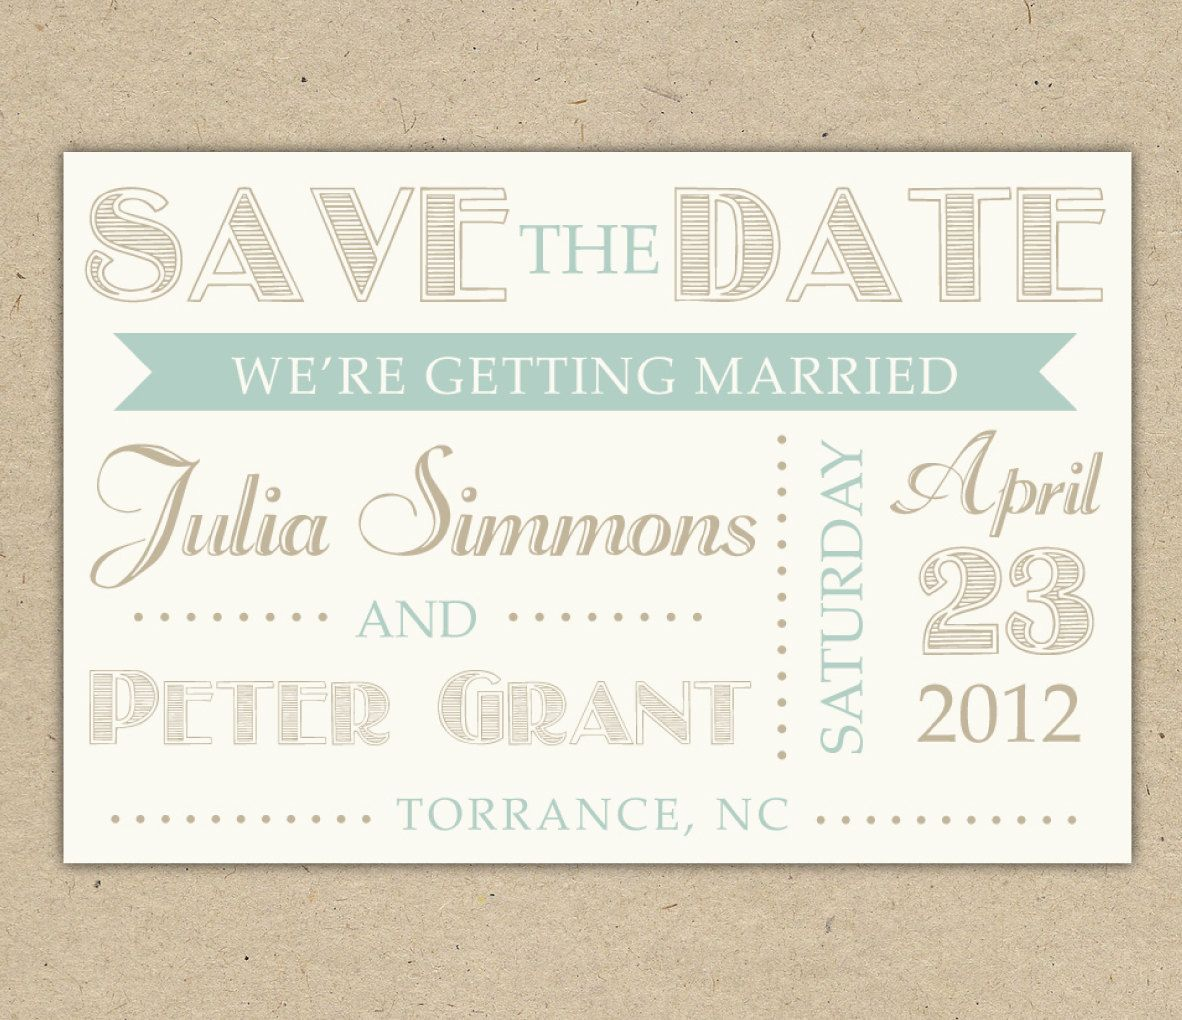 Save the date cards templates for weddings template bridal save the date cards templates for weddings pronofoot35fo Images